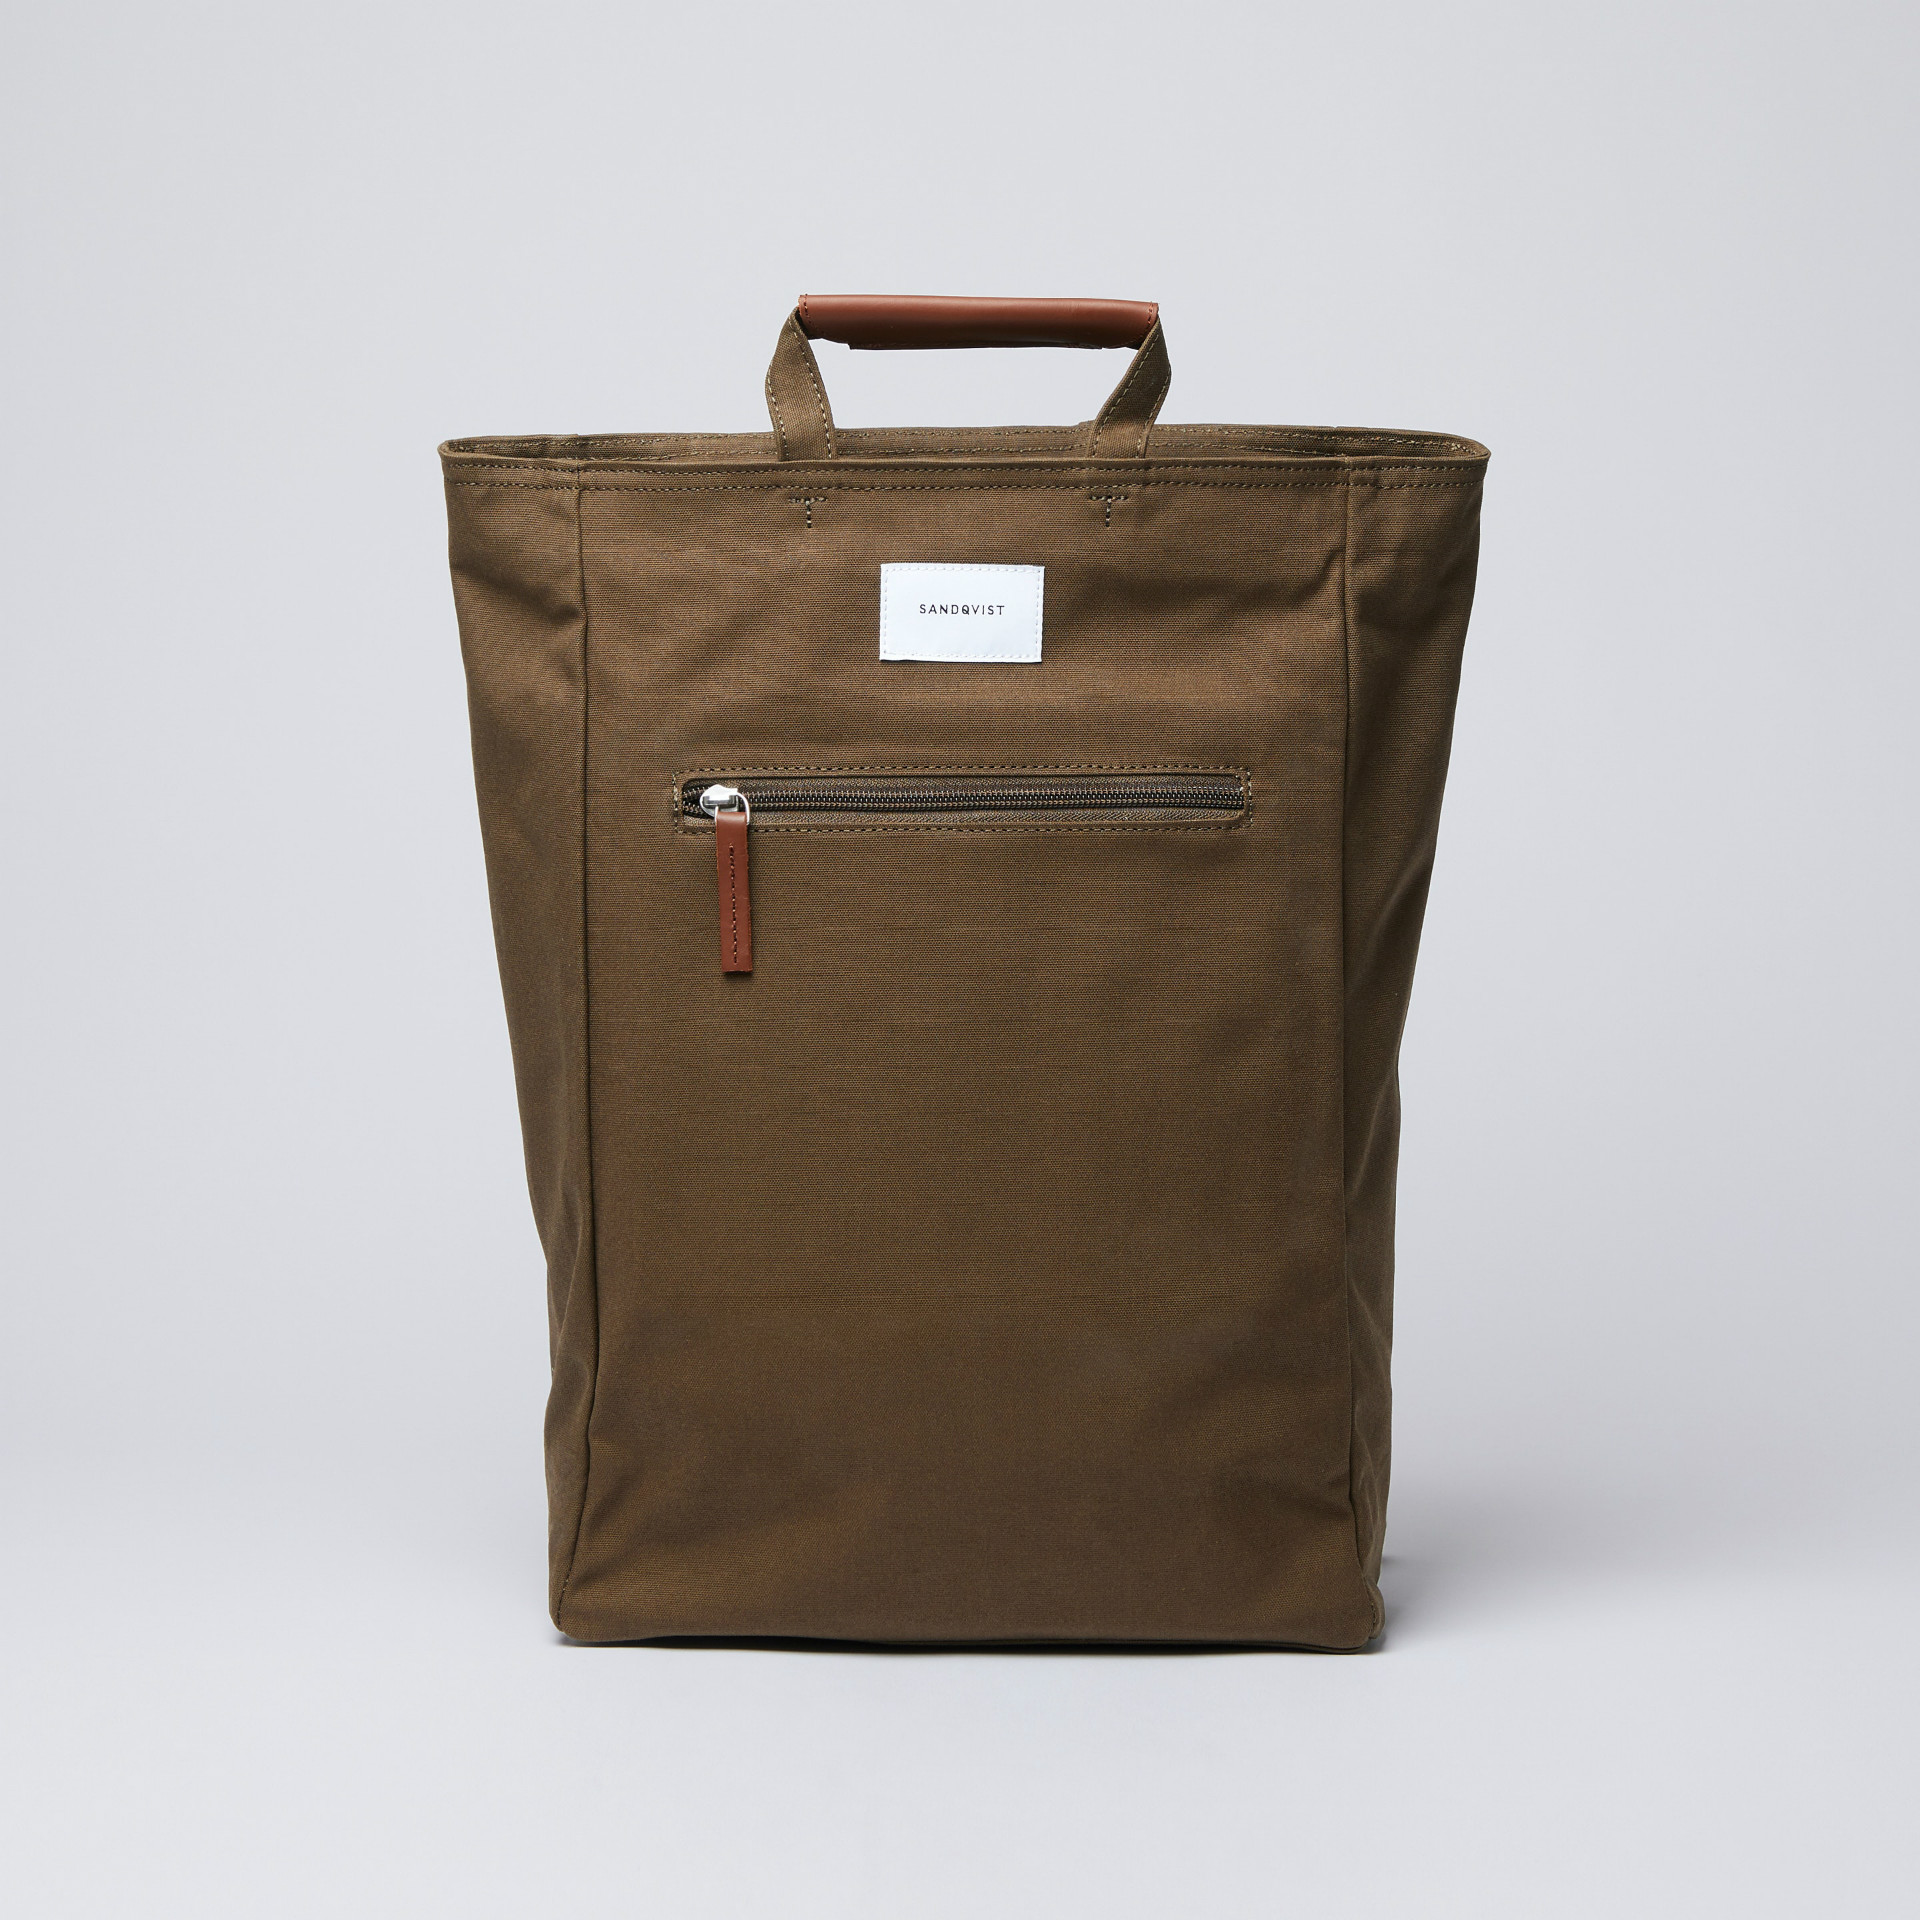 SANDQVIST サンドクヴィスト Olive with Cognac Brown Leather